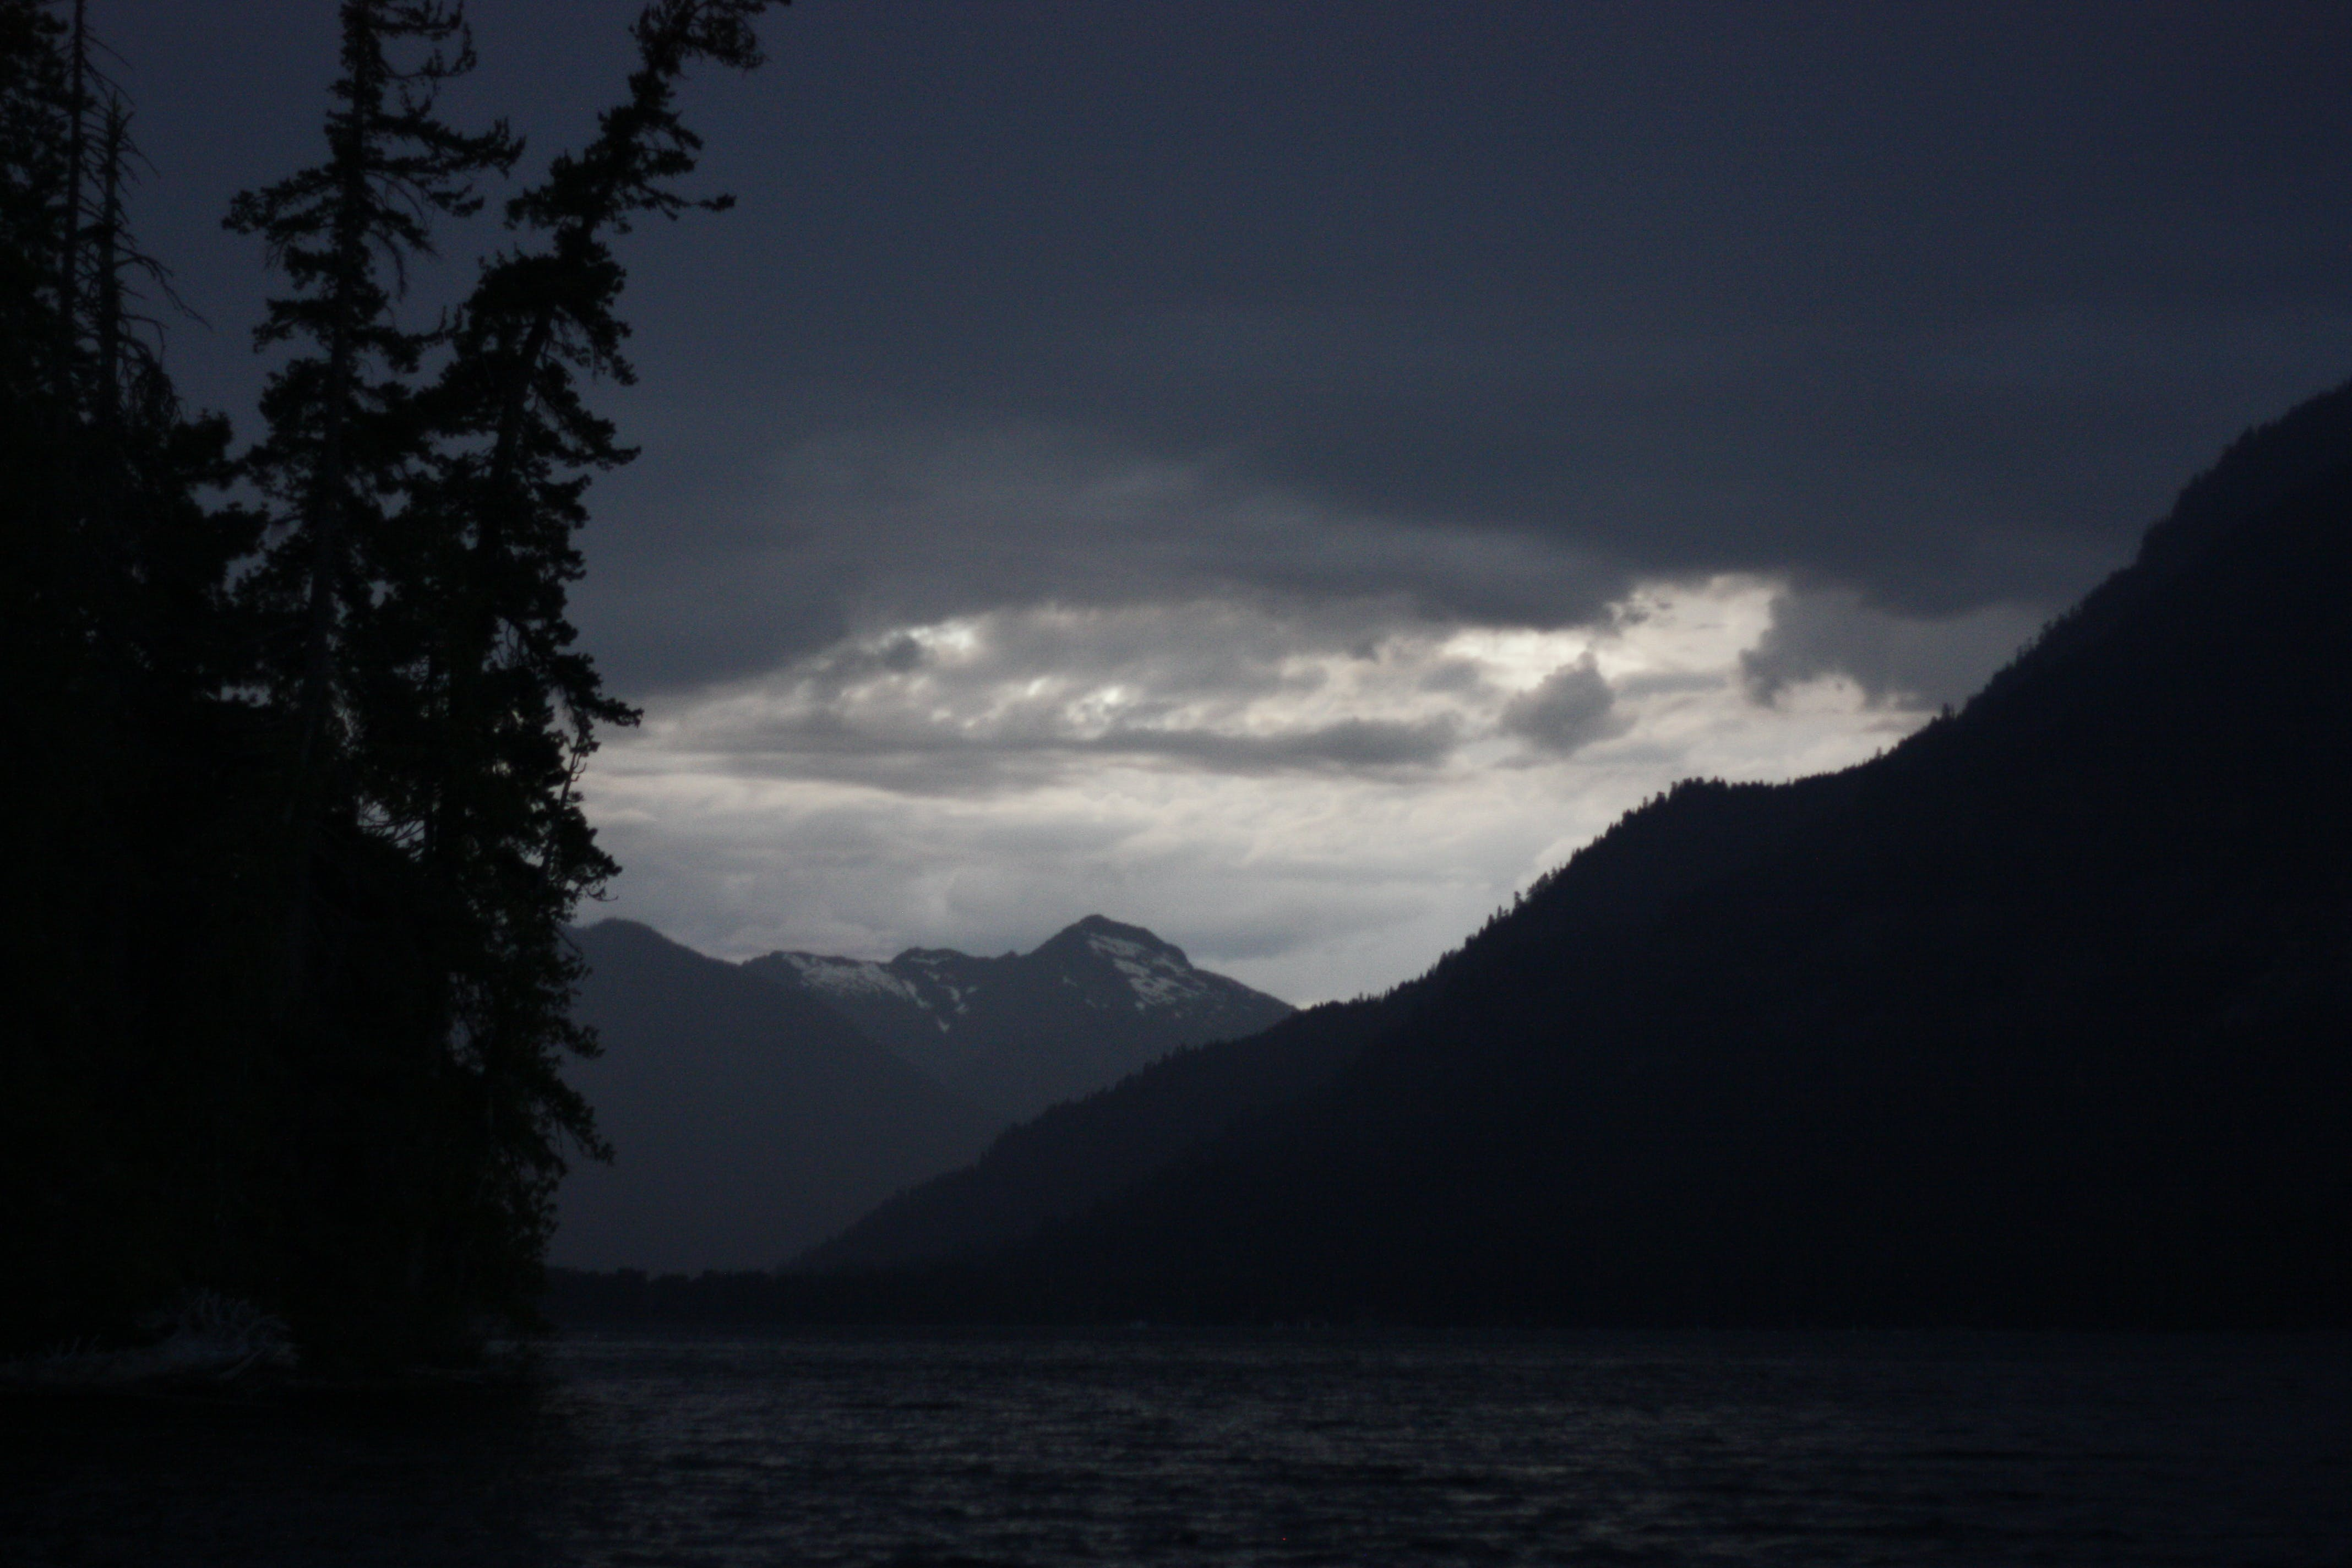 Free stock photo of mountains, forest, lake, dark clouds